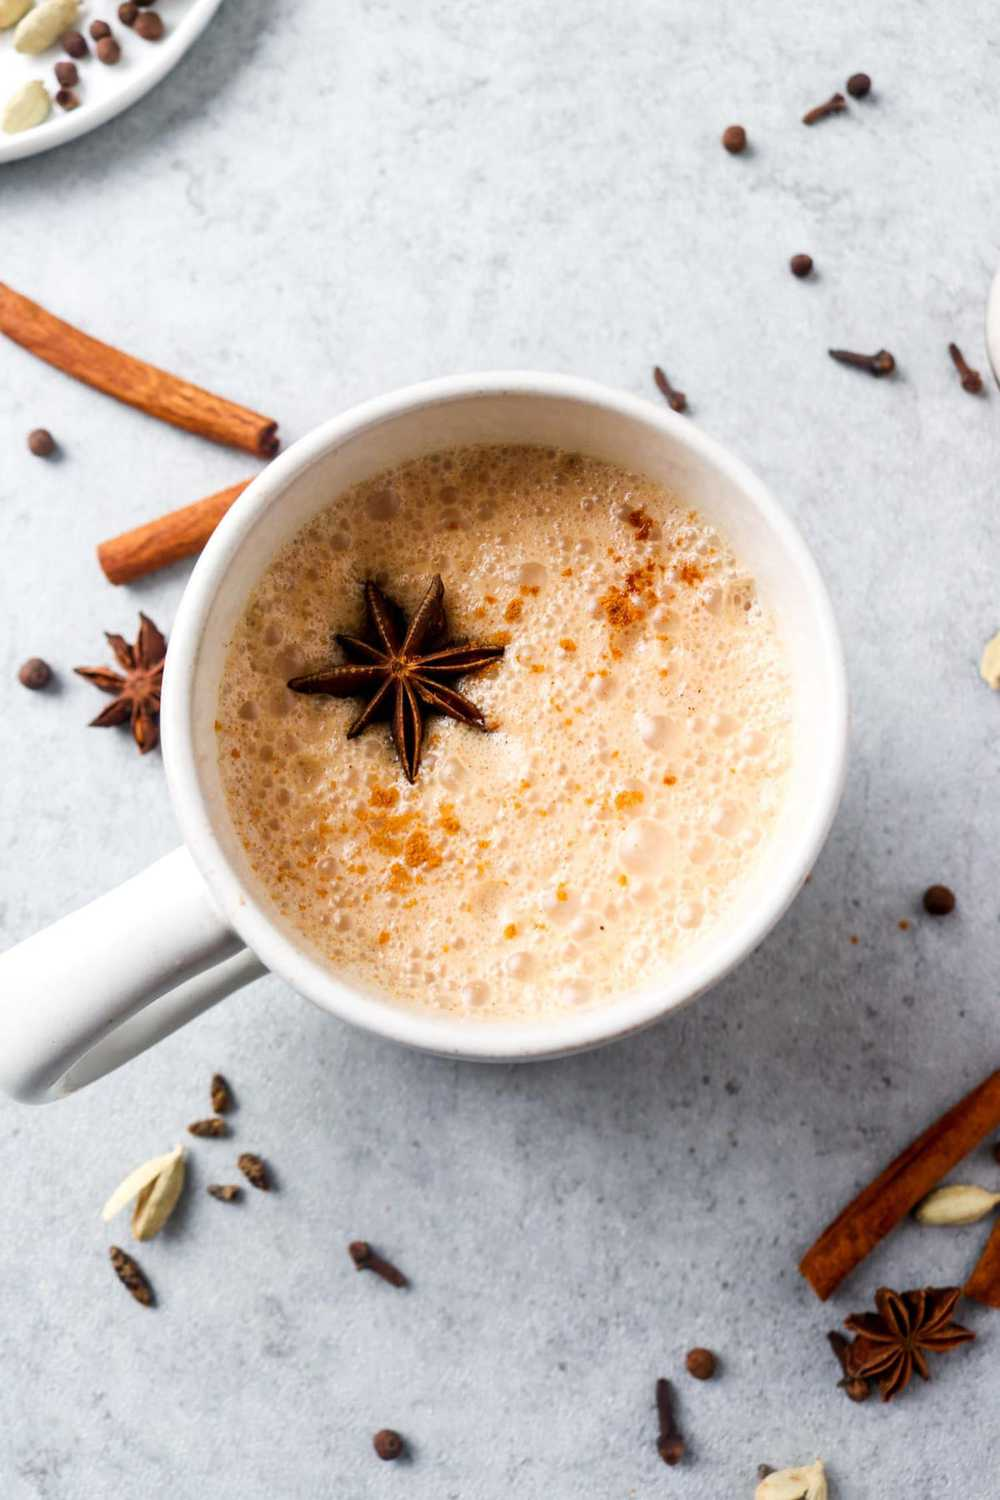 A white mug filled with a chill chai latte surrounded by spices.